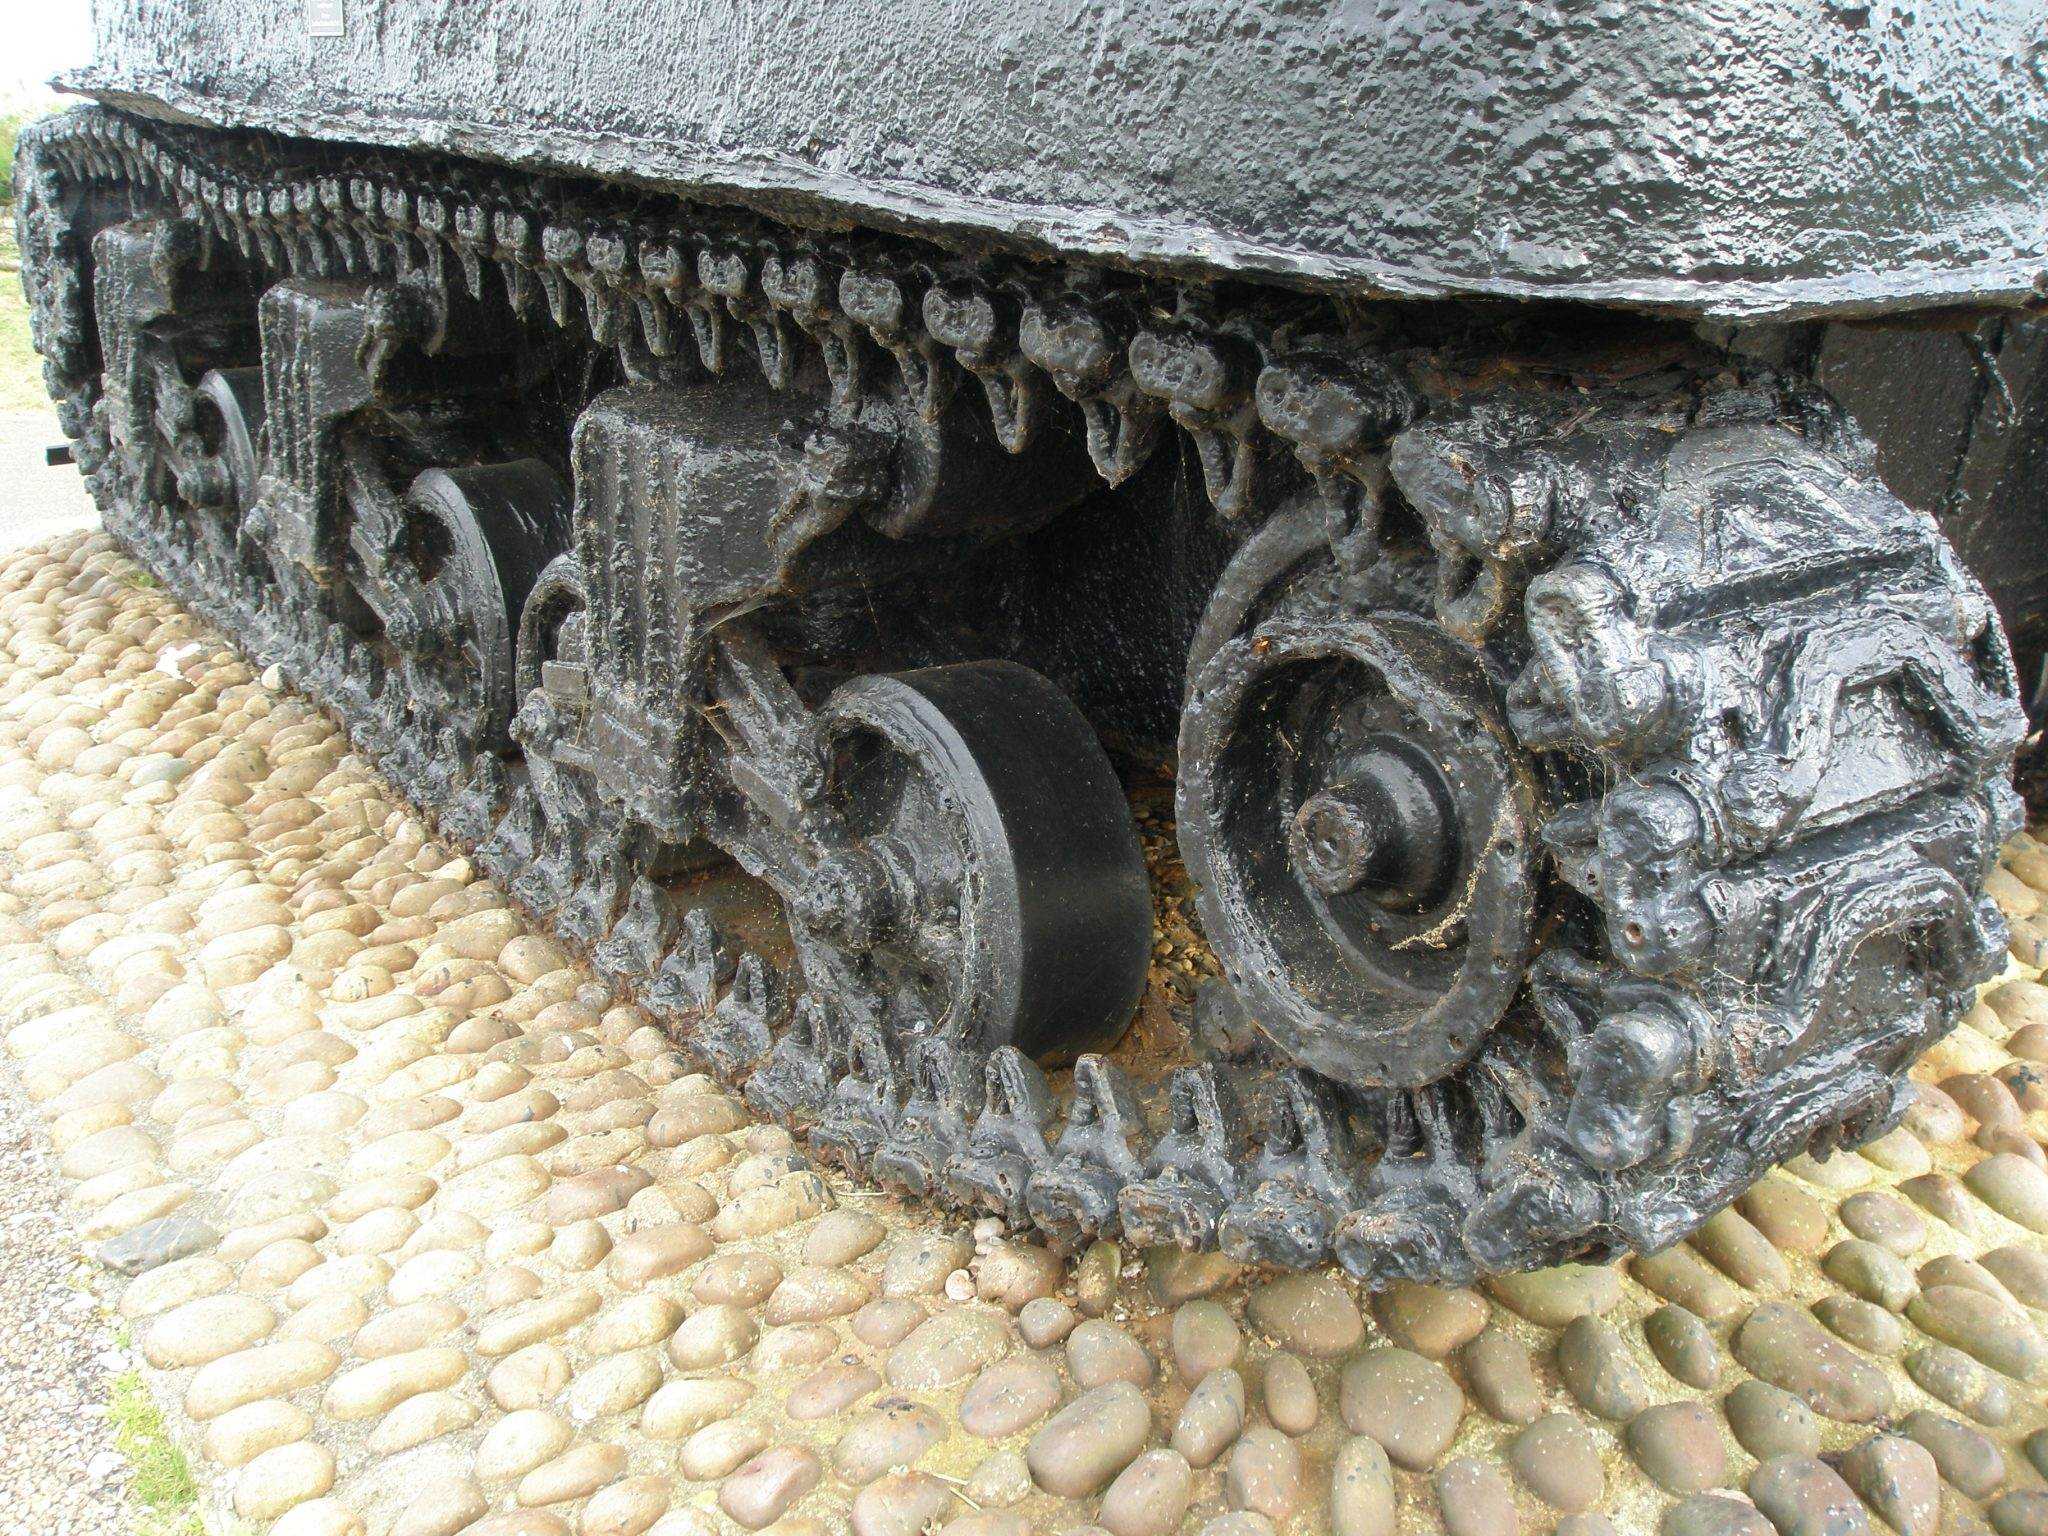 Detail of the Sherman Tank, which is in remarkably good condition, despite having been for decades under seawater.